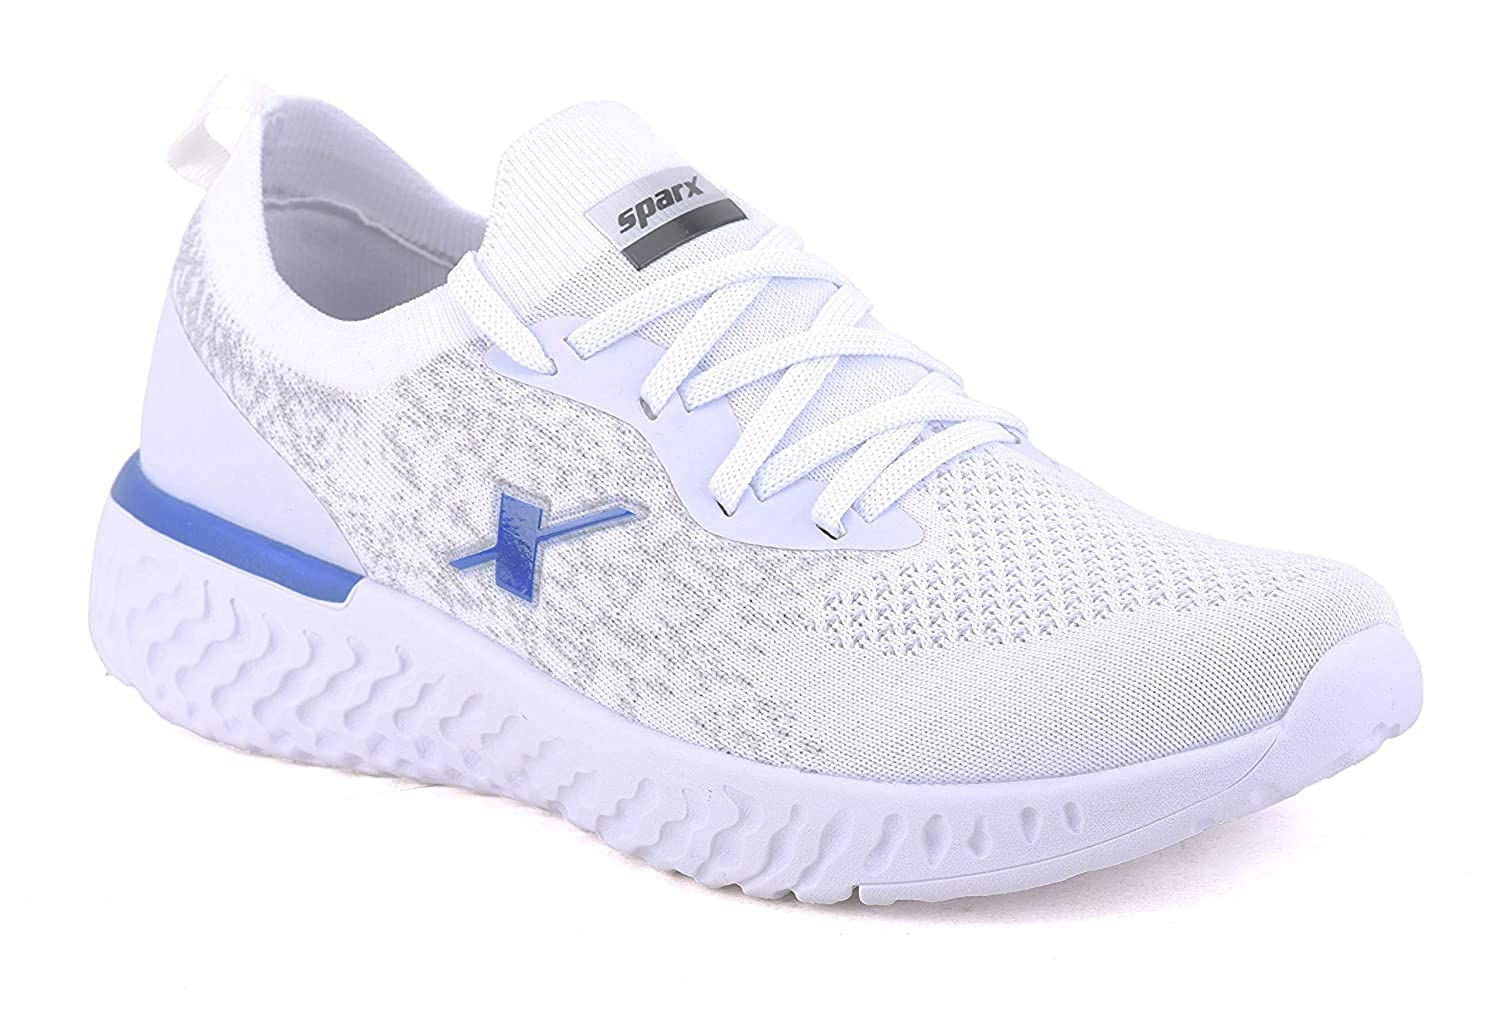 Sparx Men's Sports Running Shoes SM-443